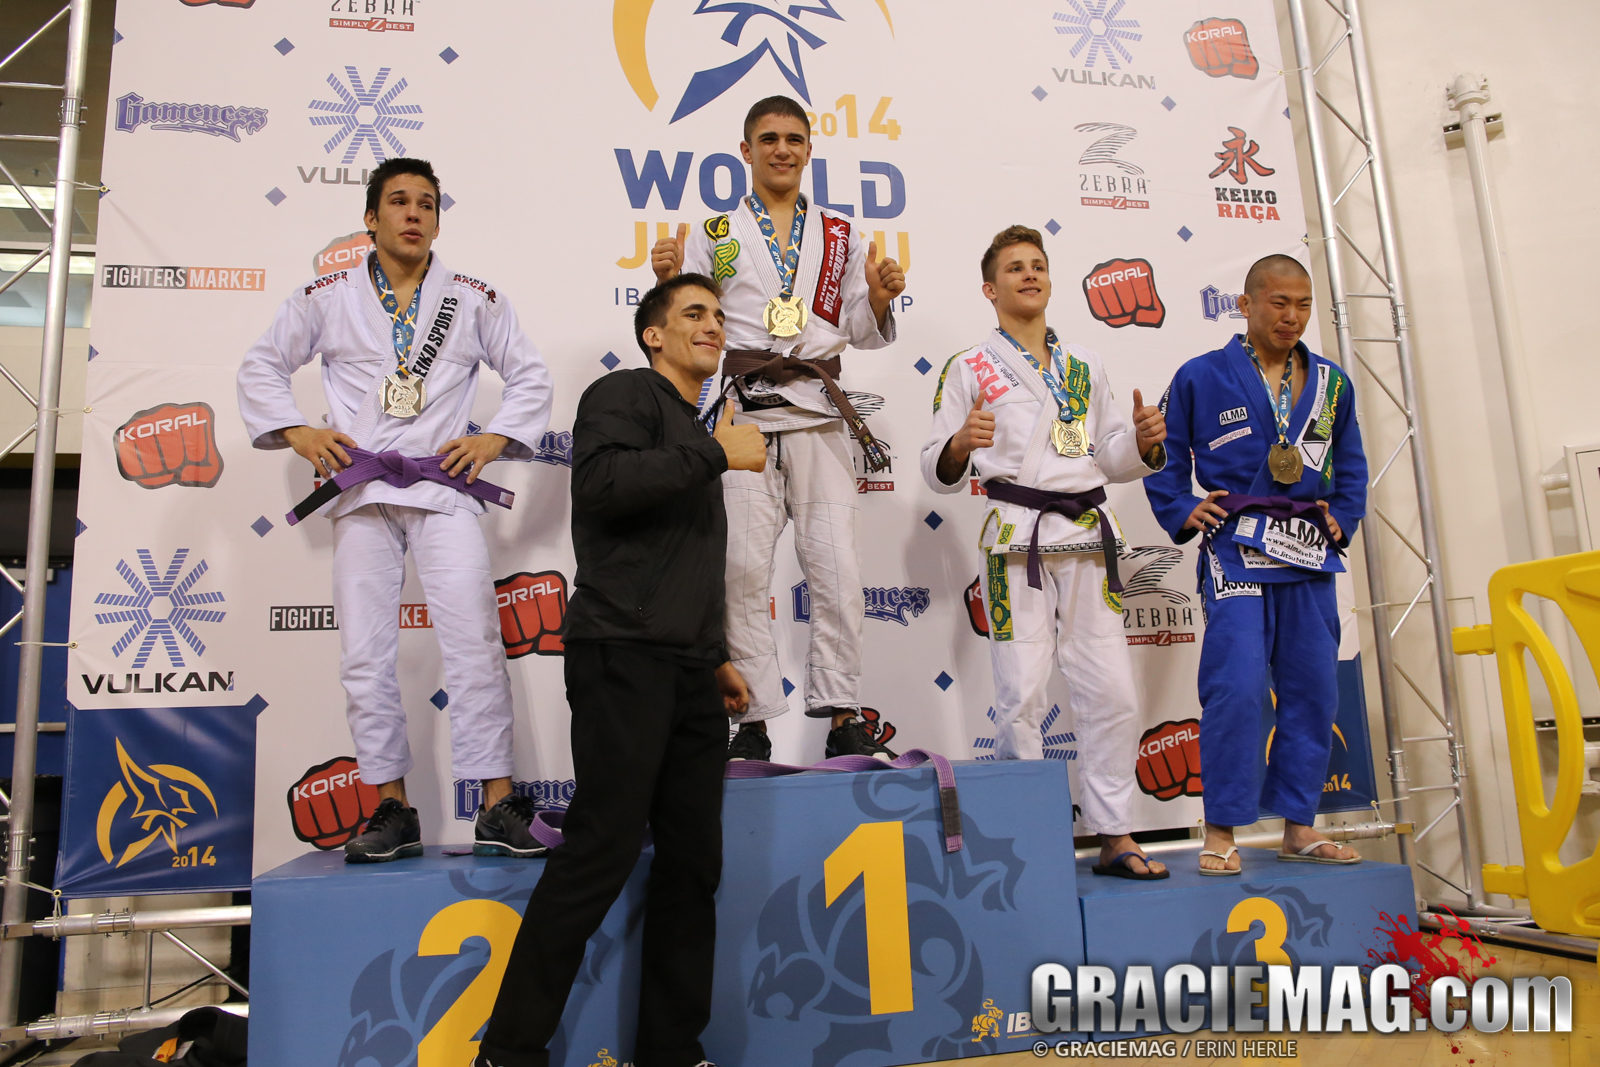 Seeing promotions on the podium at the Worlds is a common sight. Photo: Erin Herle